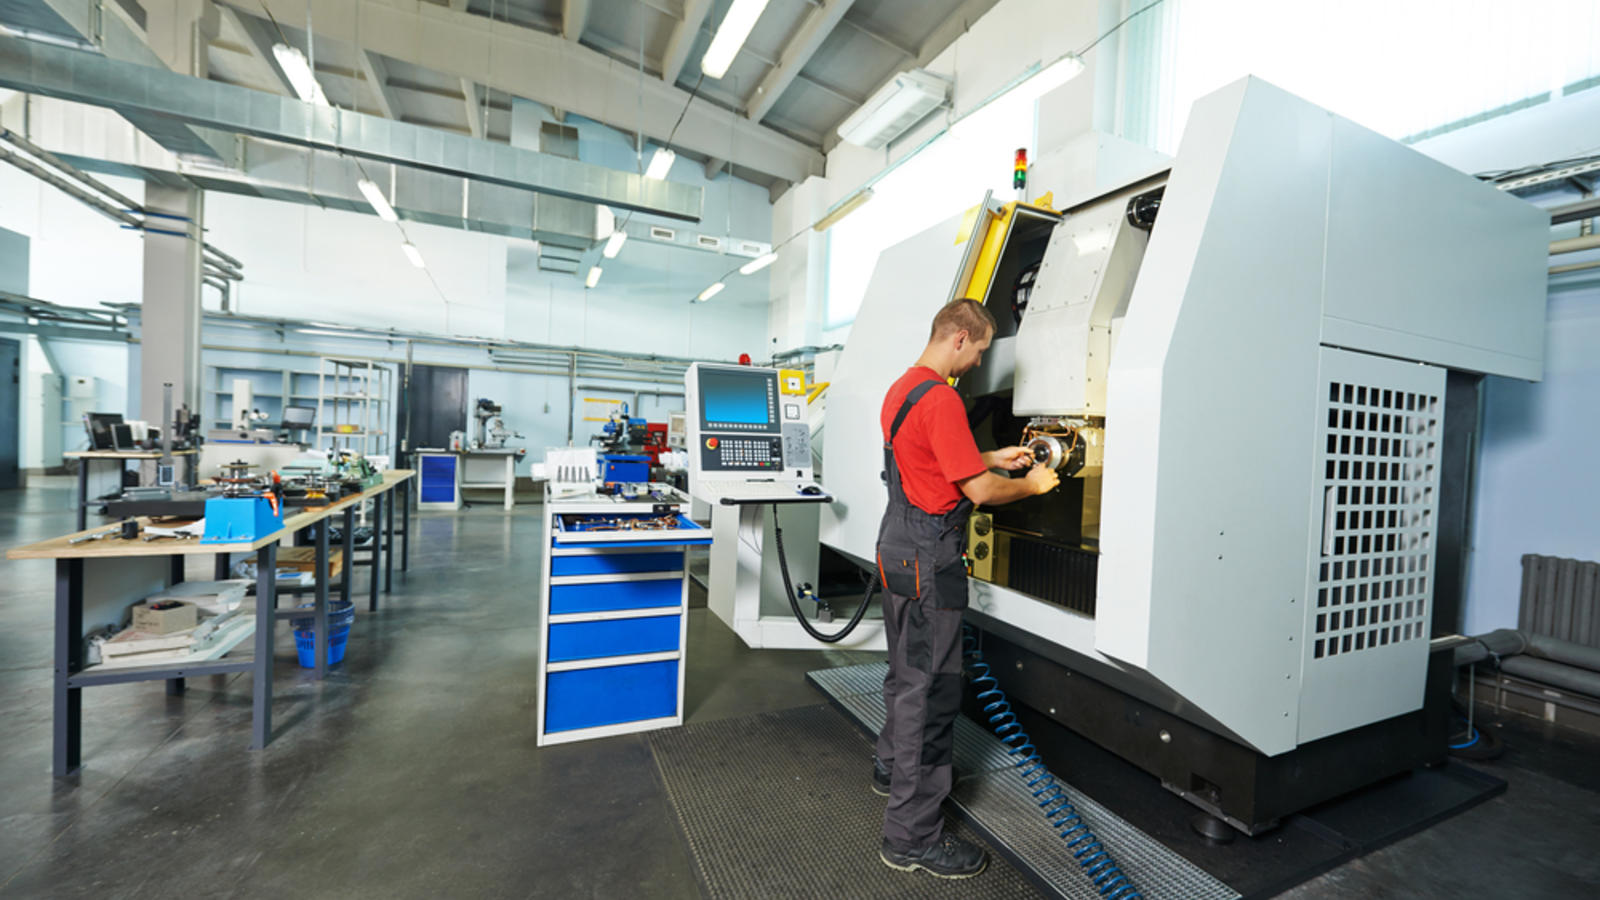 A Day in the Life of a CNC Operator